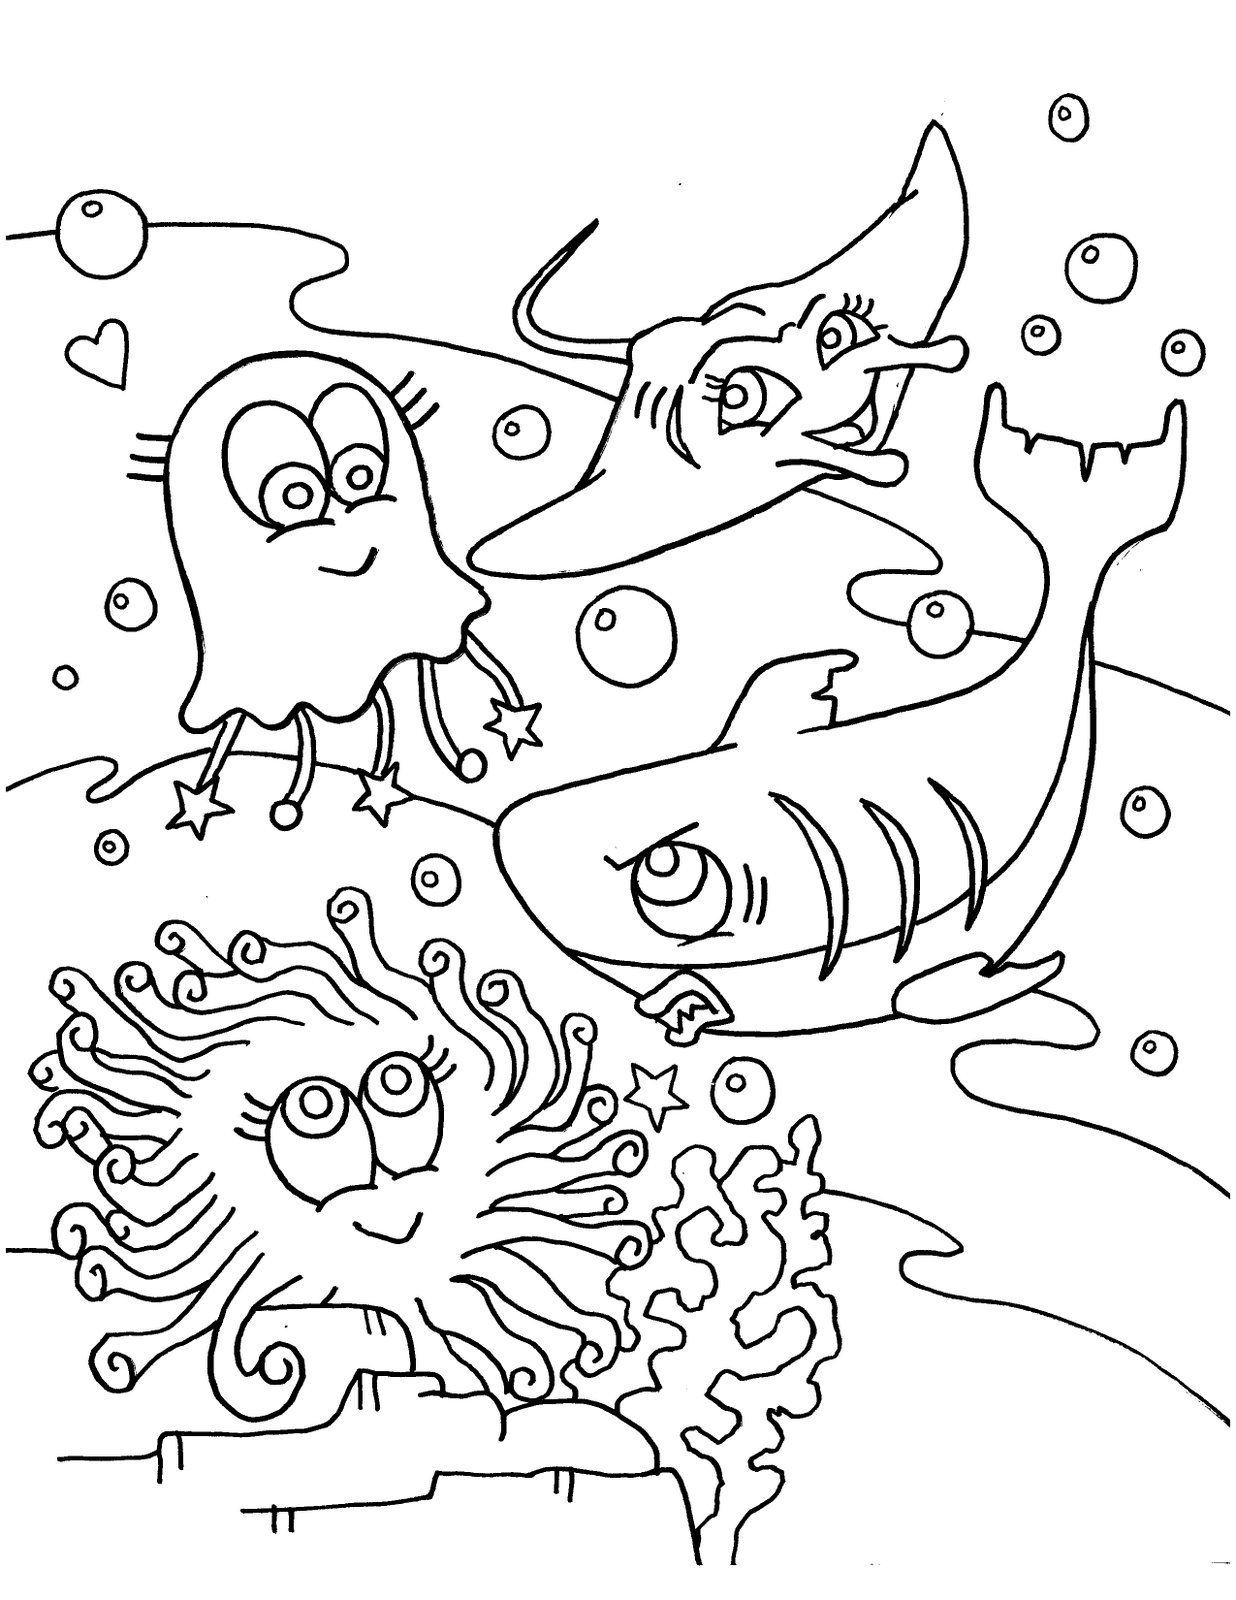 sea life animals coloring pages sea animals coloring pages coloring pages for kids life animals pages sea coloring